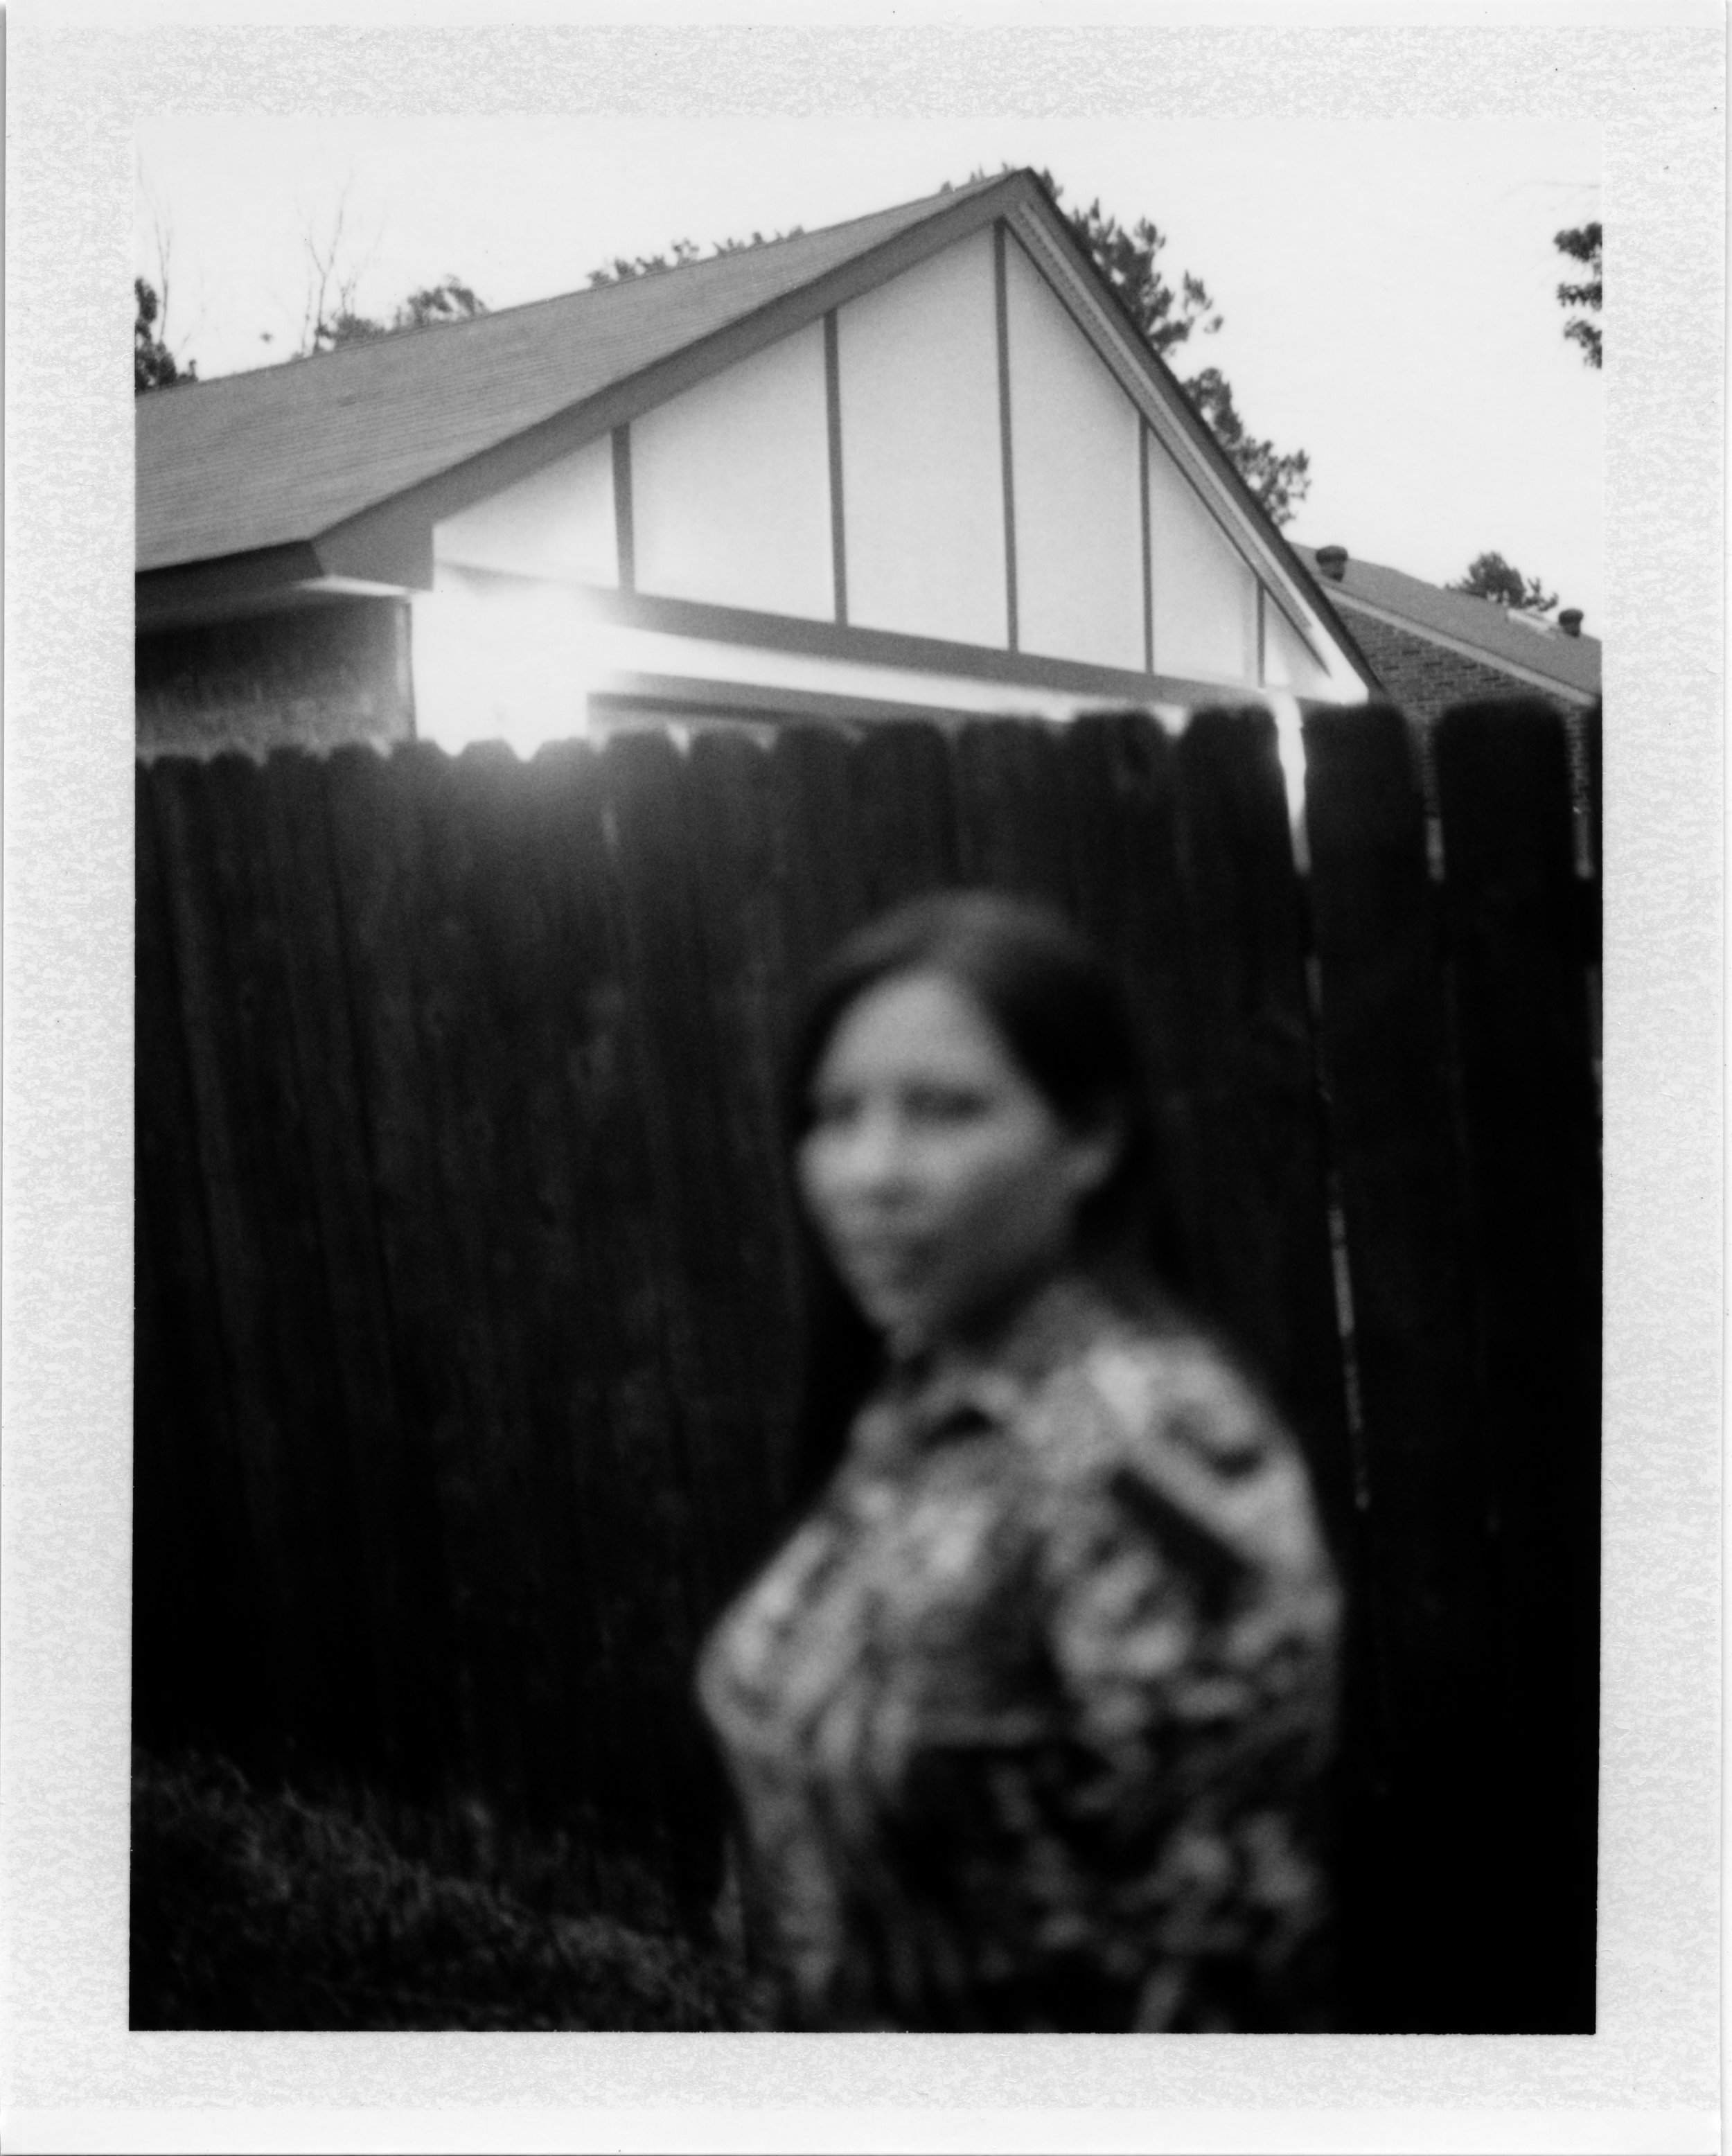 Photographs of victims of forced labor in the United States.   Nilda came to the United States when a friend of her employer in Guatemala City offered he a job working as a domestic worker. Her employers had always treated her well and as the oldest in her family she jumped at the opportunity to travel to the United States and make money to help her younger siblings and parents survive.   Once in the United States she entered a hellish situation of working about 16 hours a day for almost no pay. Her employers, who were Honduran, sent her mother $100 per month, but withheld her passport and put her under strict psychological control. She was not allowed to talk to anyone outside of the house and was often threatened with physical violence. Her phone calls were monitored and her boss listened to every phone call back home to her mother. She worked under these conditions for two and a half years before she was rescued by Immigrations and Customs Enforcement. She now live in the Dallas area and is fighting a deportation order from the United States government.   This project is supported by Lexis Nexis